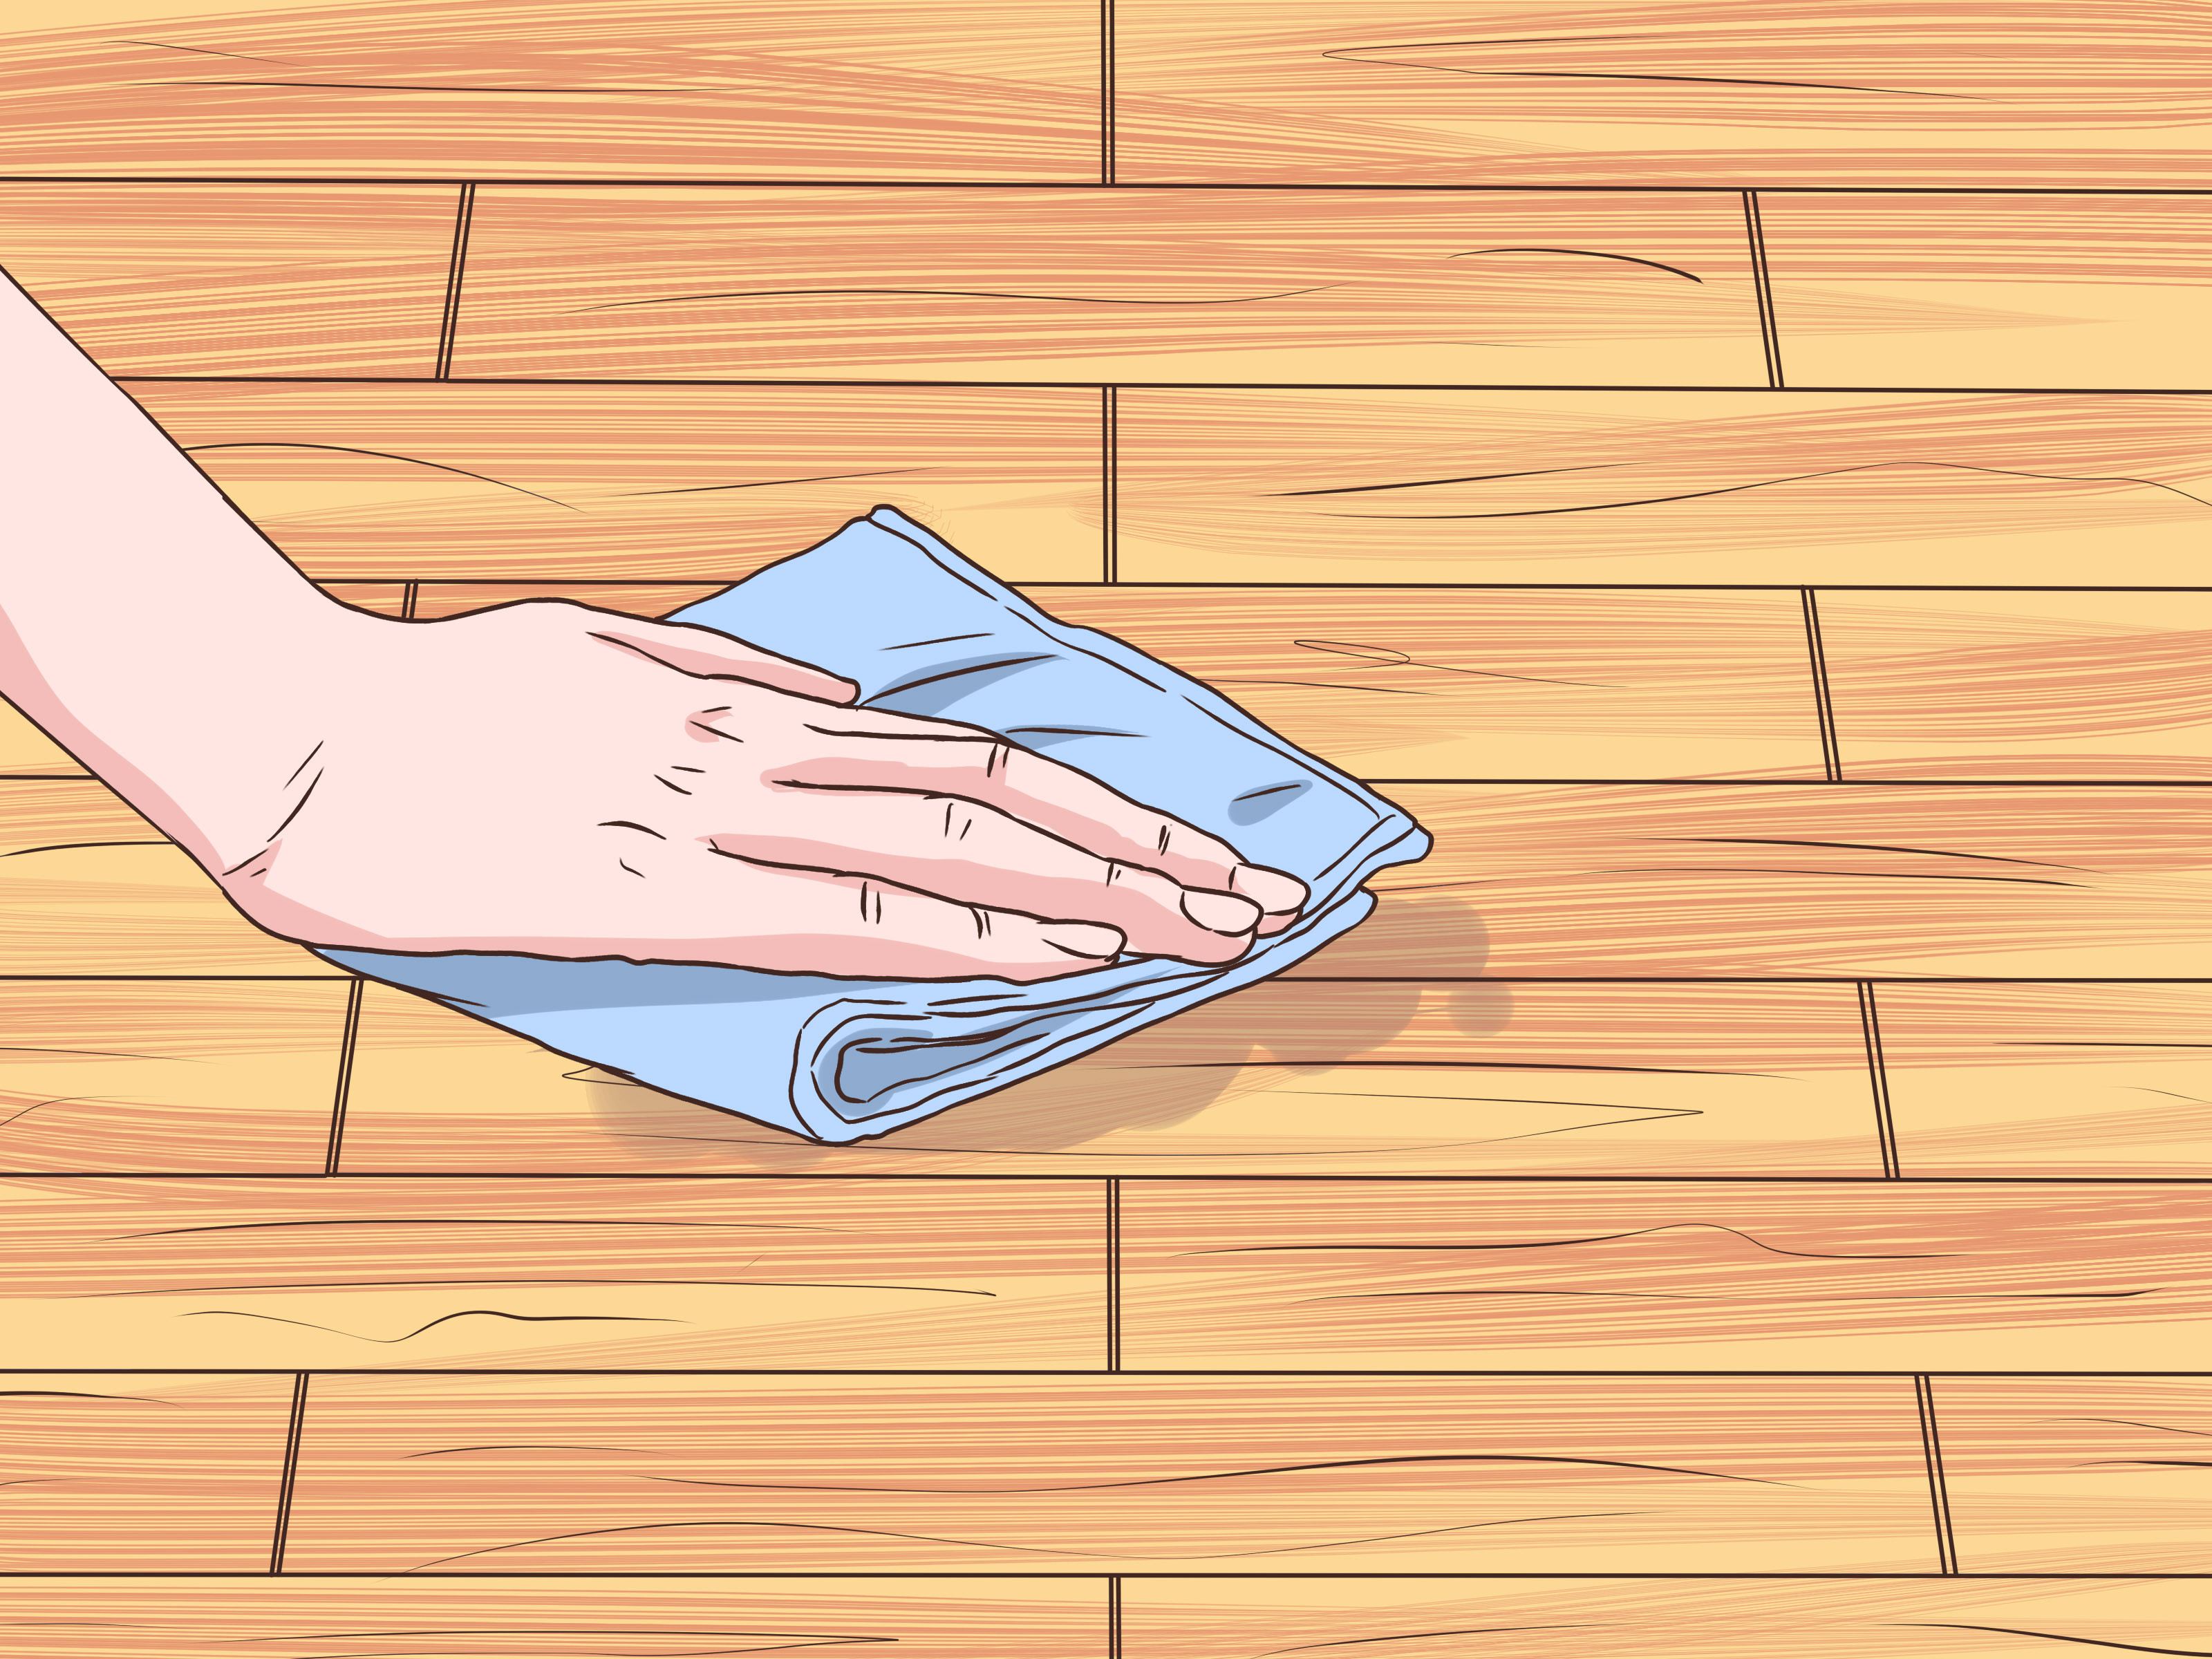 hardwood floor repair products of how to clean sticky hardwood floors 9 steps with pictures inside clean sticky hardwood floors step 9